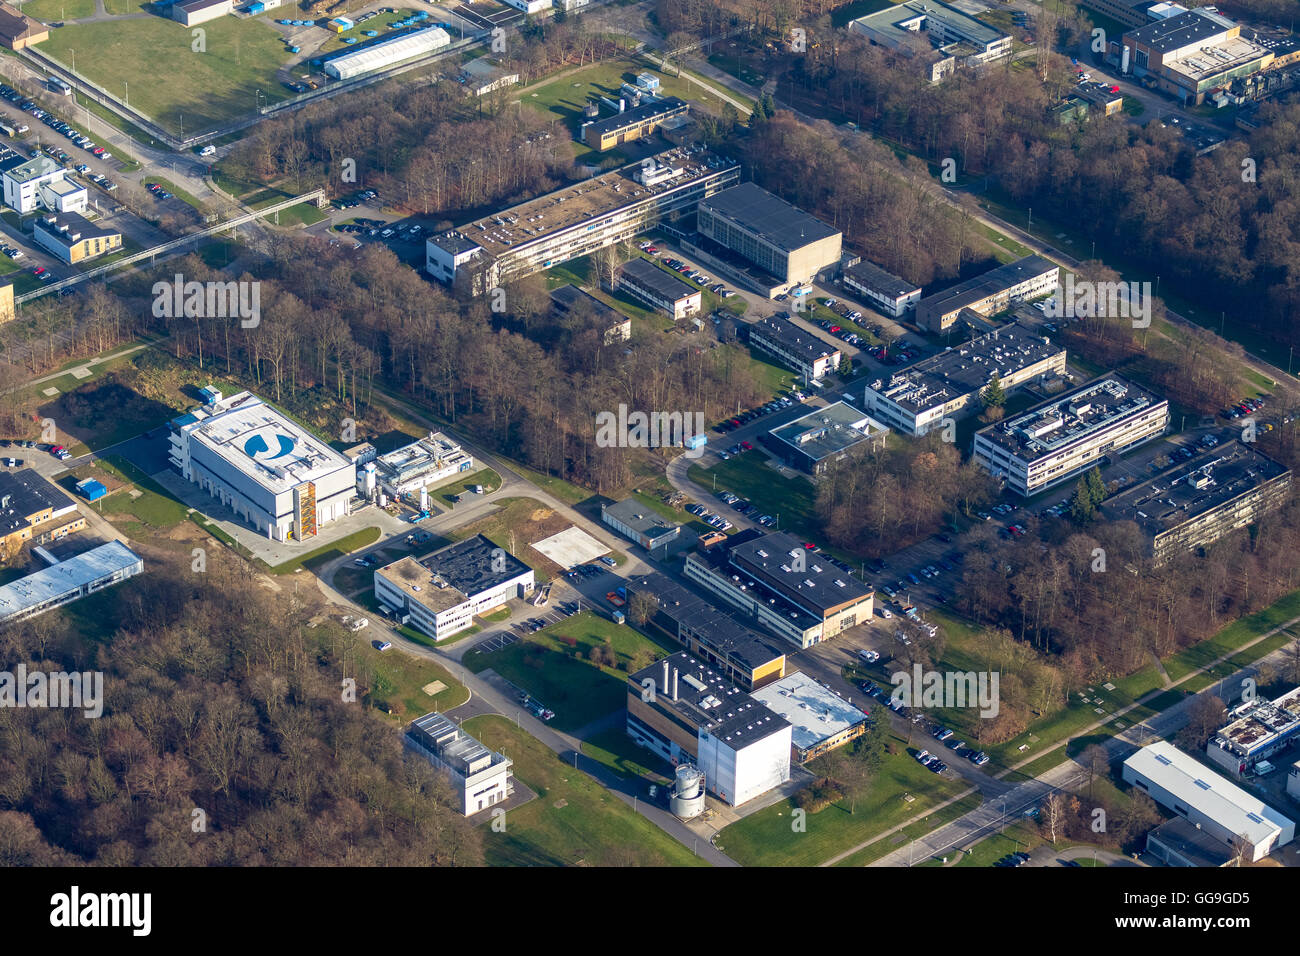 Aerial view, Nuclear Research Centre Jülich, Jülich, Jülich-Zülpicher Börde, Julich, north - Stock Image